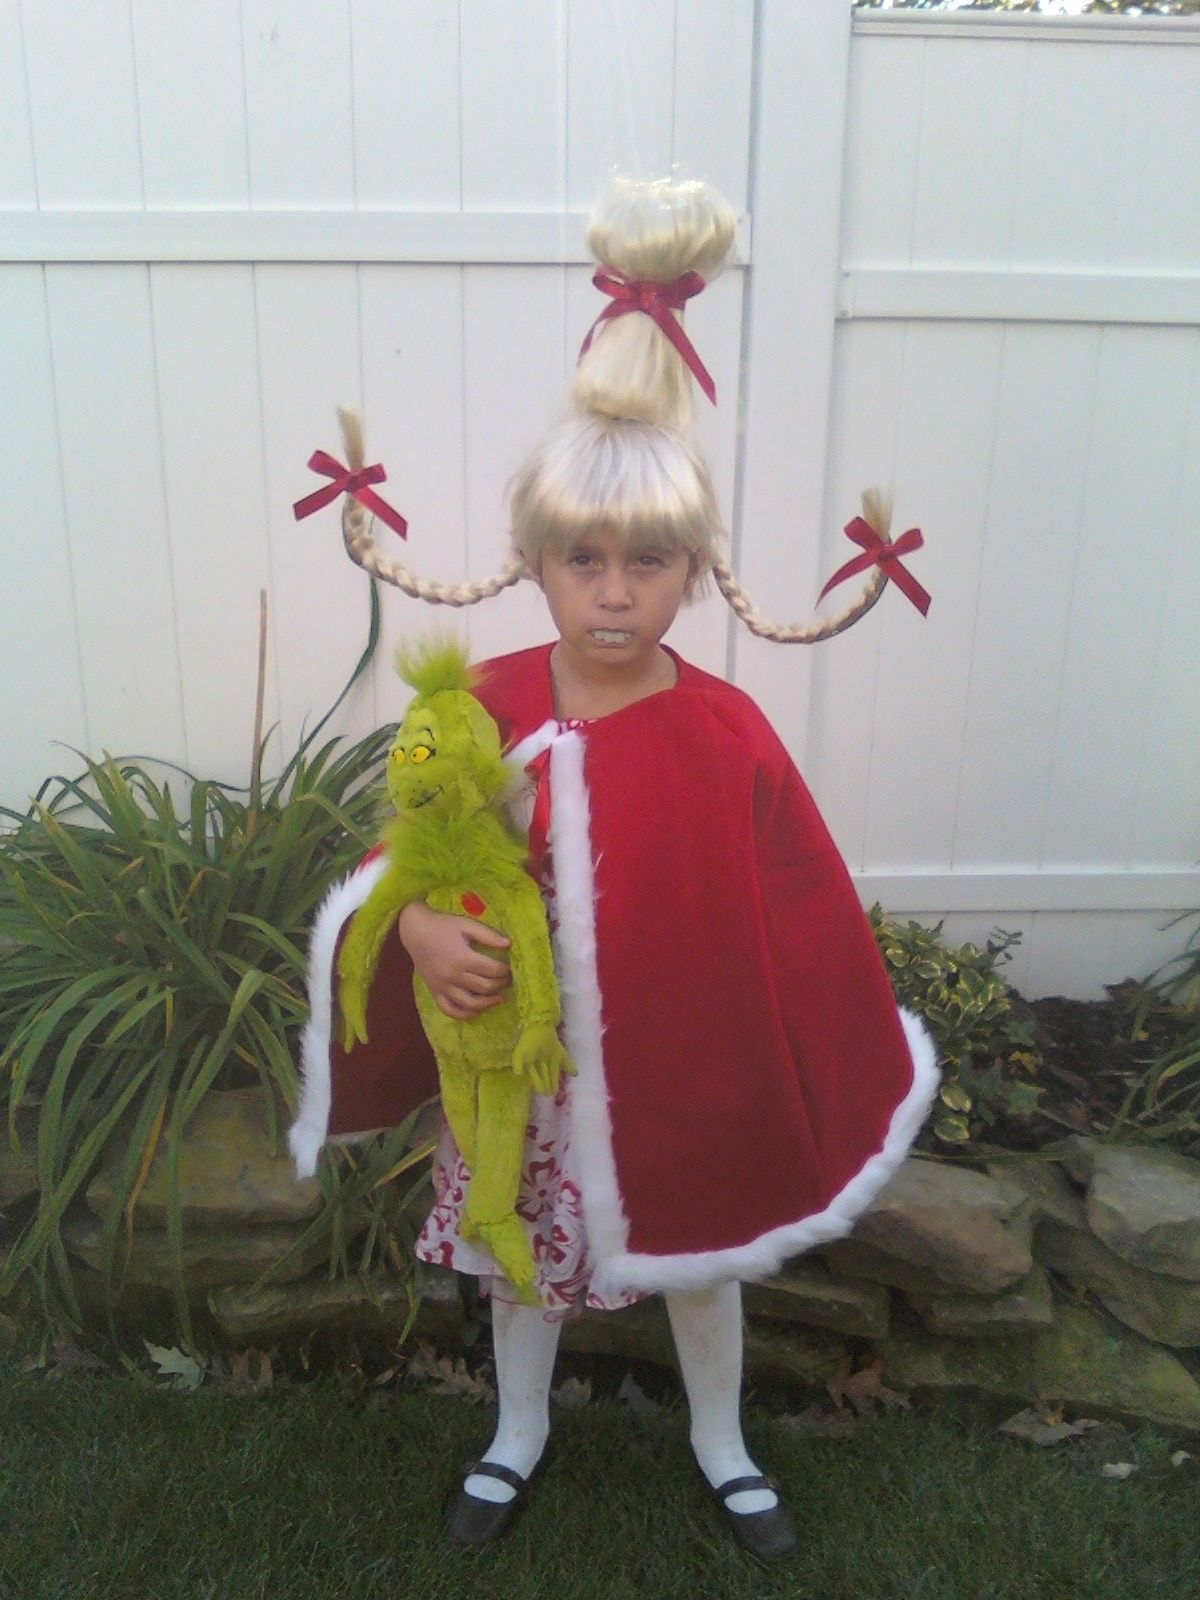 How to make your own grinch costume - Cindy Lou Who From The Grinch I Made The Hair And My